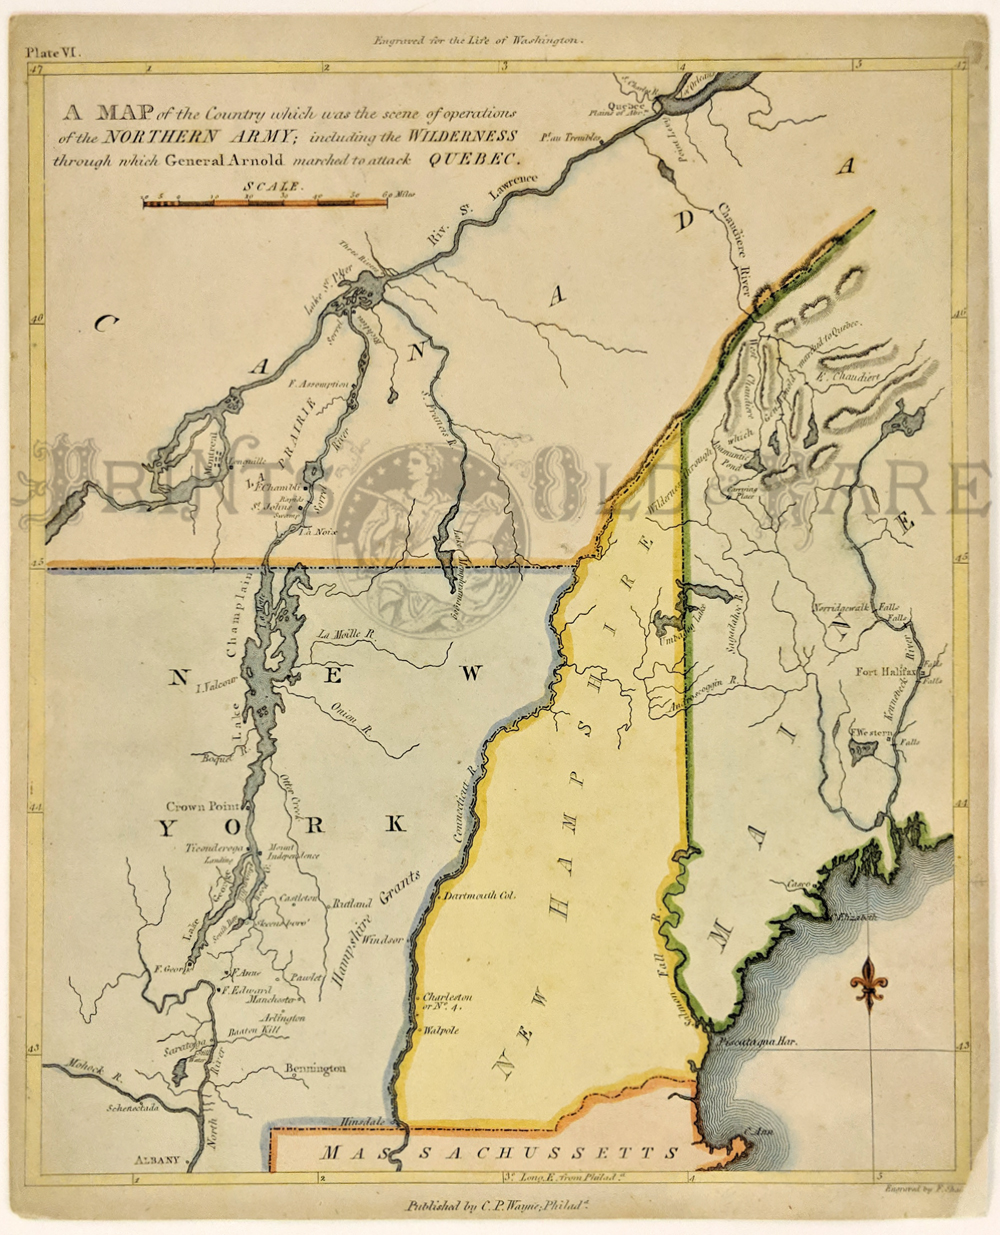 revolutionary war map route to quebec this original map from marshall s life of washington is led a map of the country which was the scene of